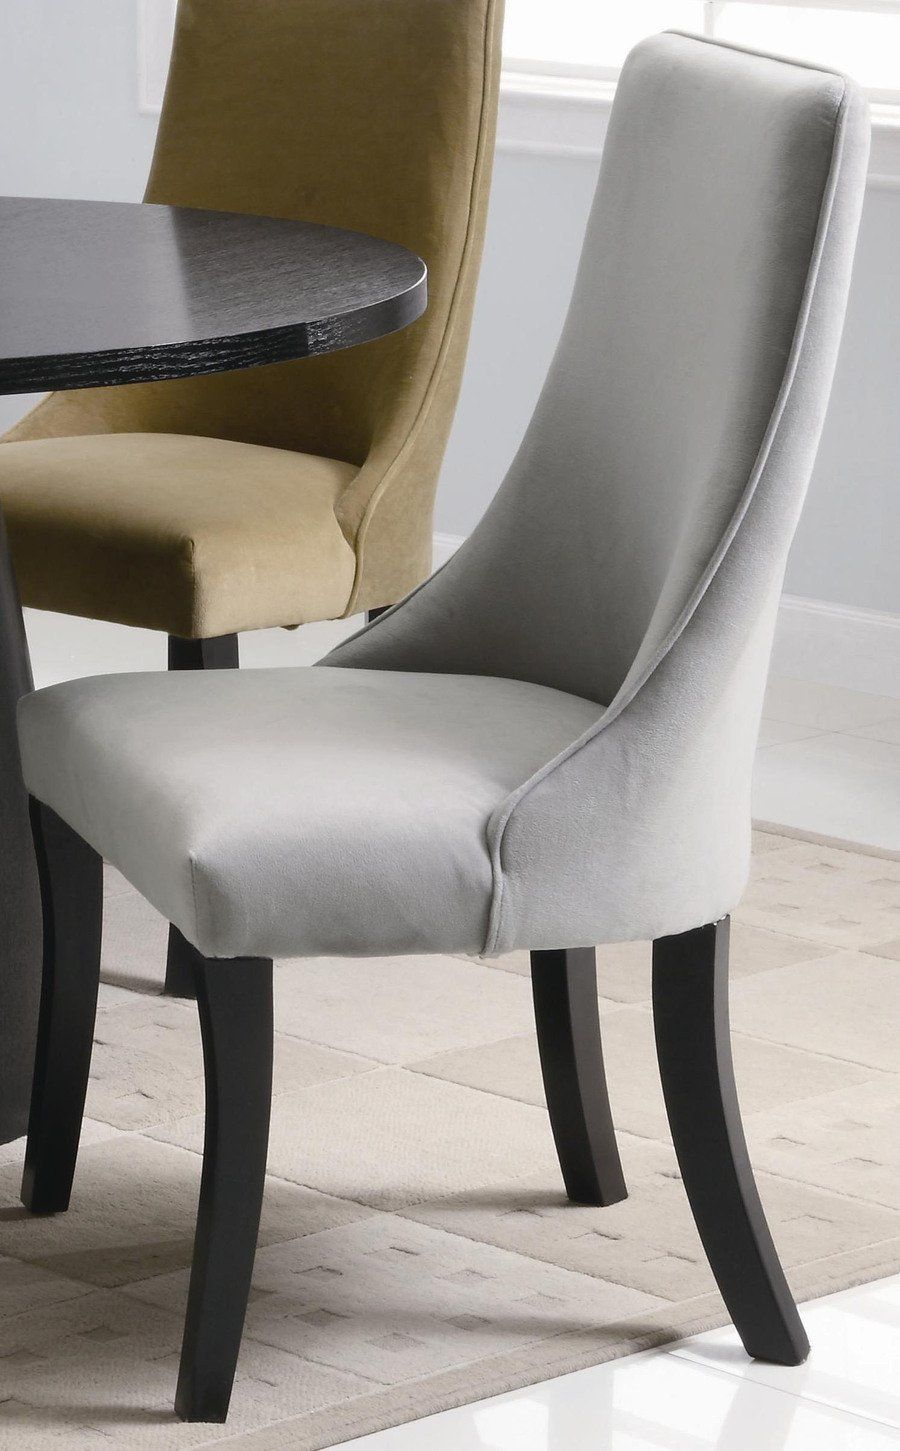 curved pseudoarm parson's chairs for dining room Dining